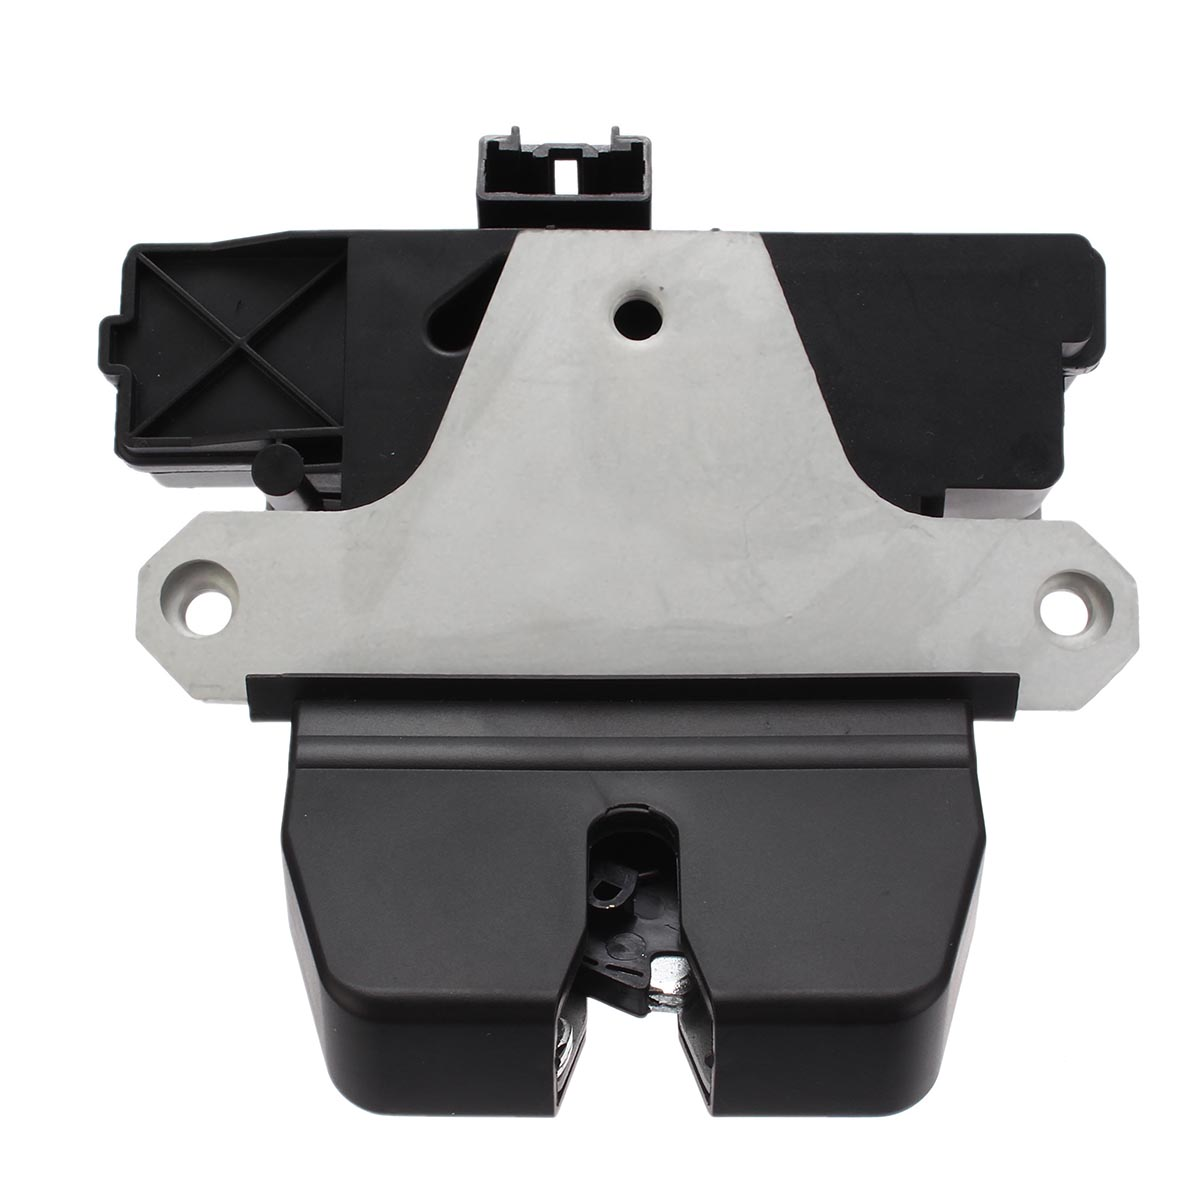 5 PIN Boot /Tailgate Rear Trunk Lid Lock Latch Central Locking Mechanism For Ford /Focus /Mondeo /MK4 /C-Max 3M51R442A66AR for ford mondeo mk4 2007 2014 for mondeo ca2 2007 bonnet hood lock latch catch block 1490198 7s7a 16700 bf